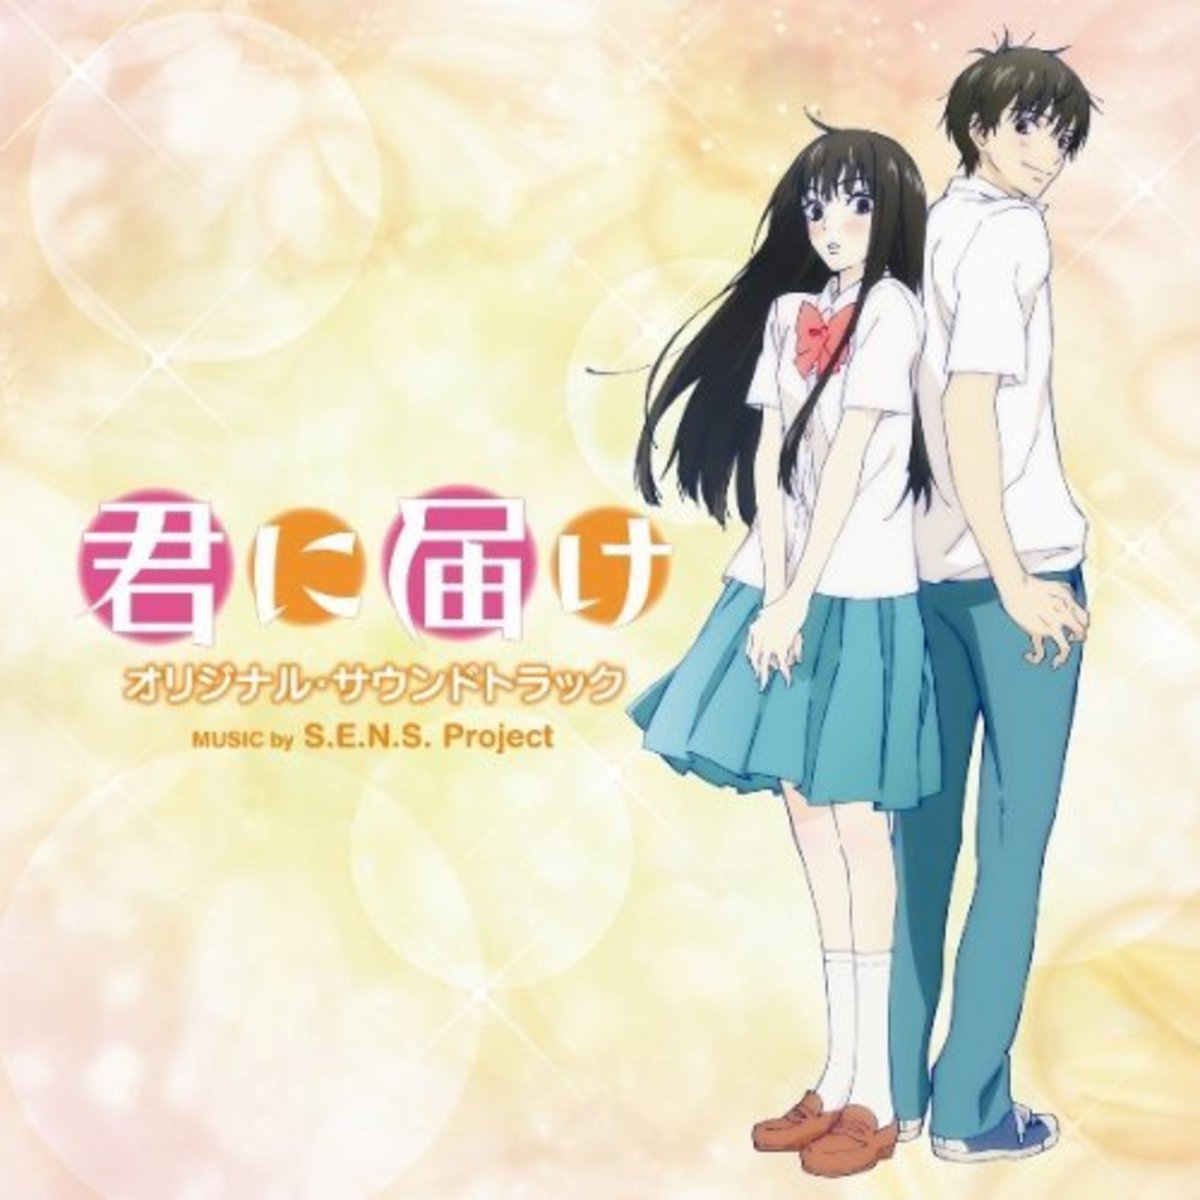 Kimi ni Todoke Anime Opening & Ending Theme Songs With Lyrics